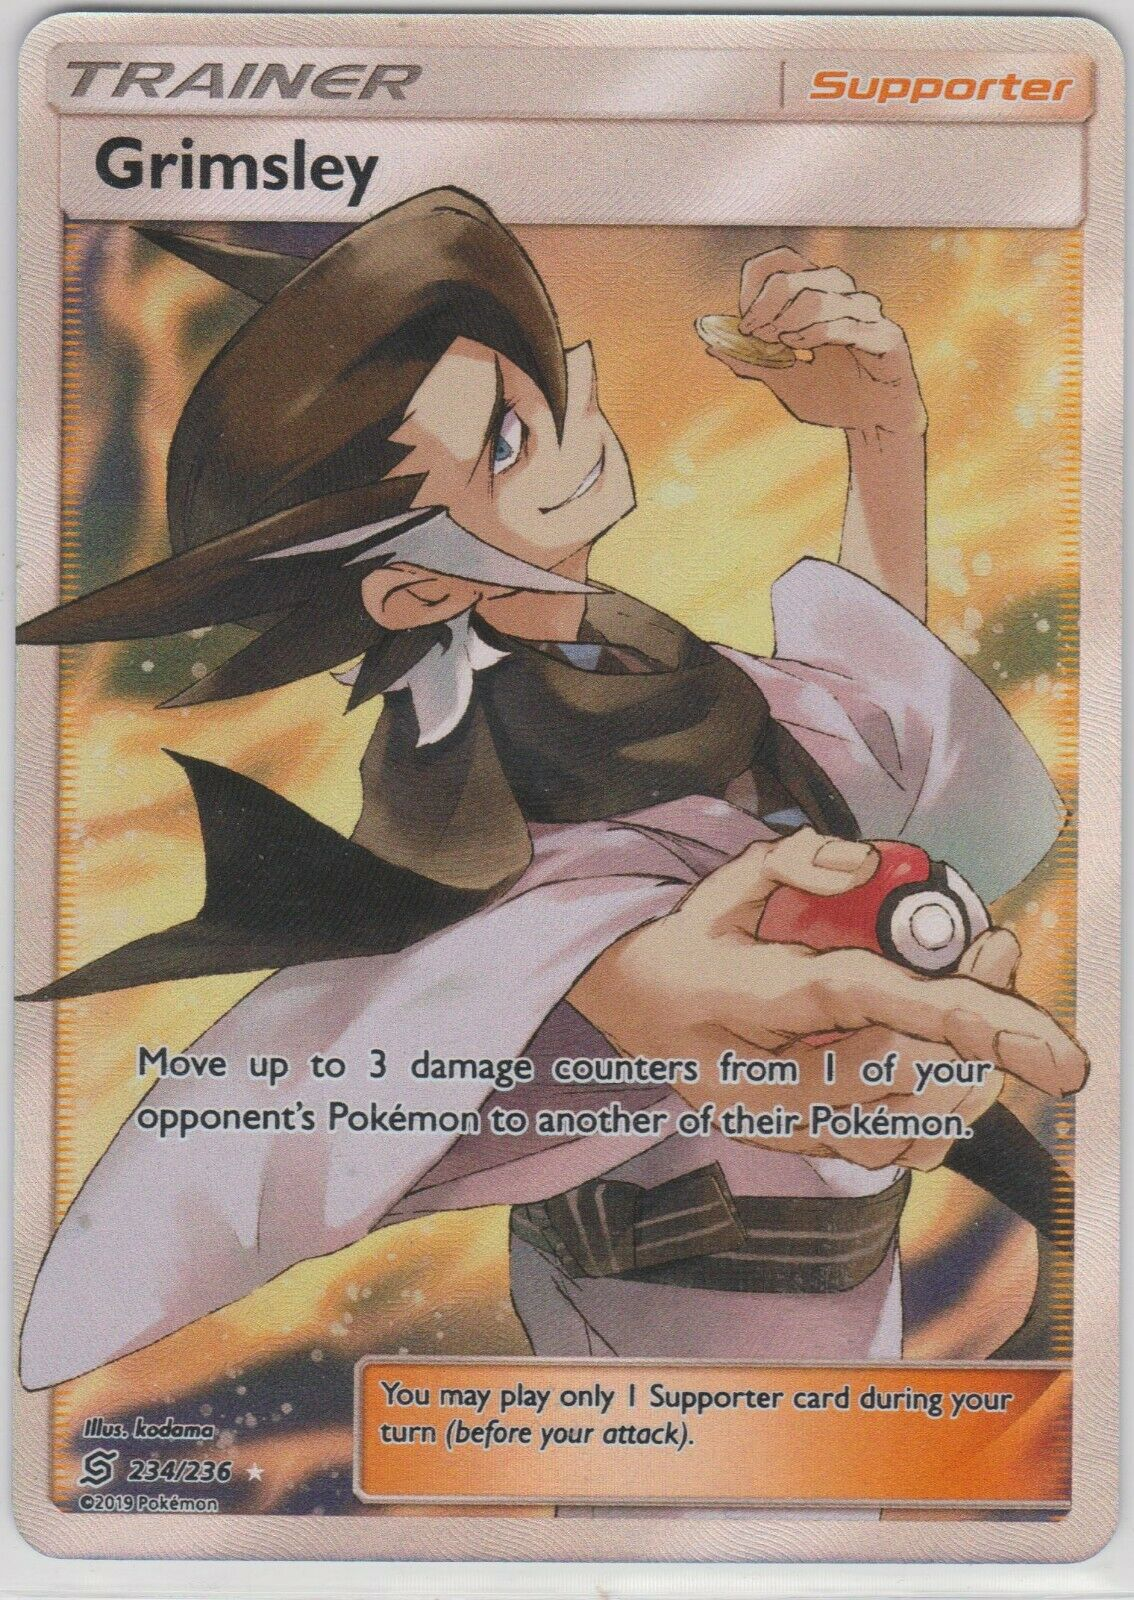 Grimsley 234-236 - FULL ART